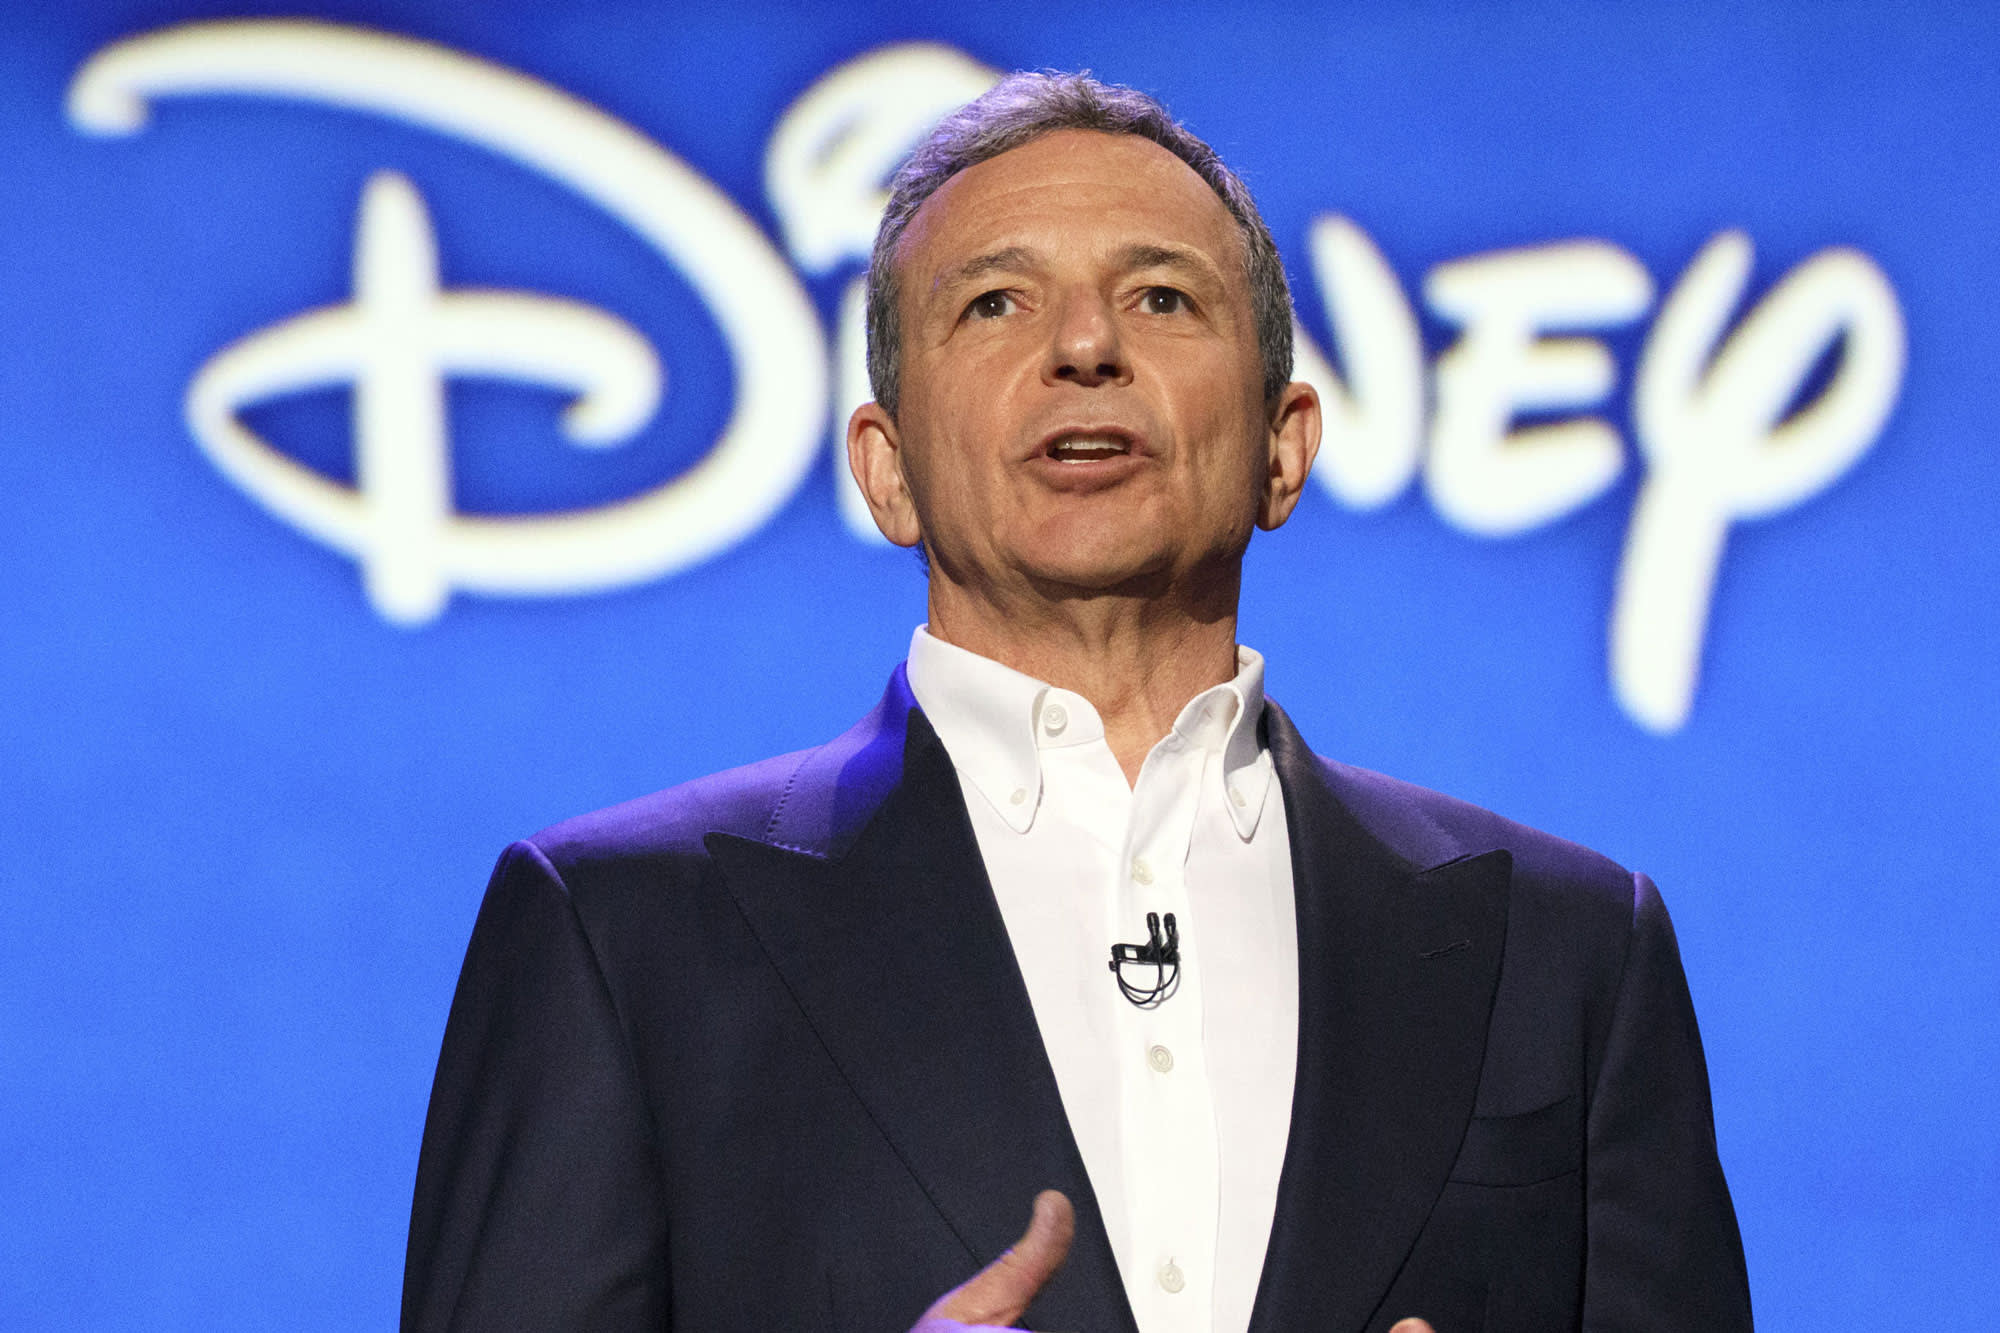 Disney+ is set to launch on all the major streaming platforms except Amazon